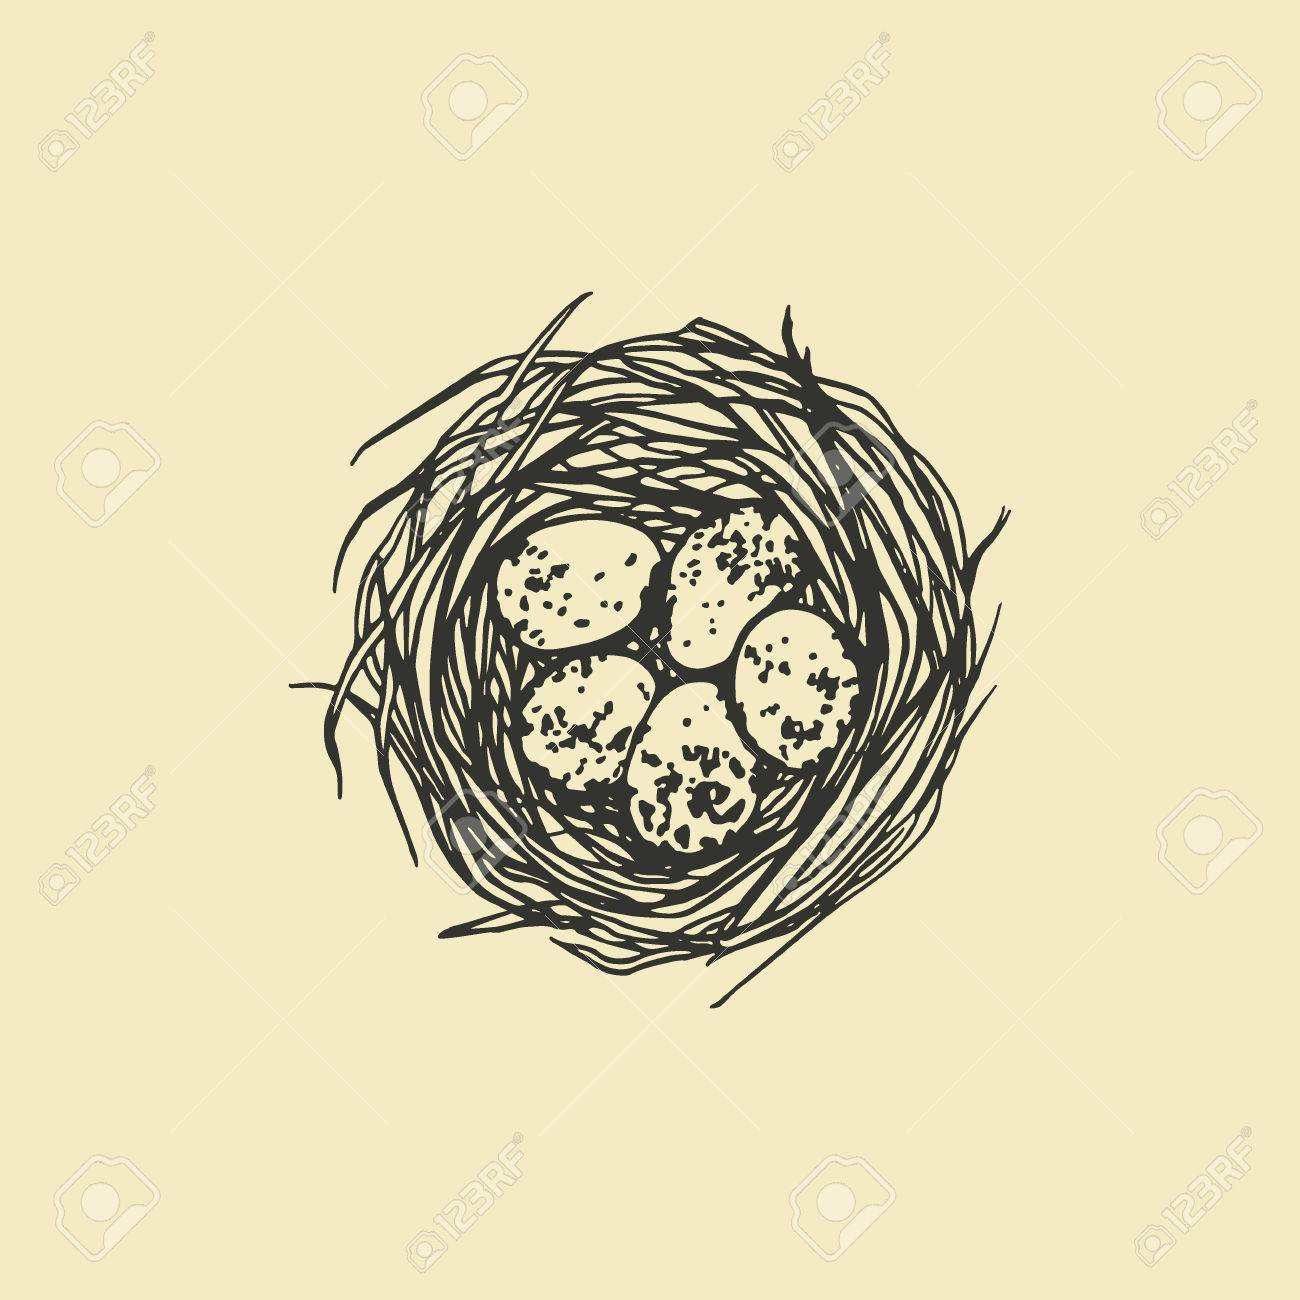 Vector Illustration Of Hand Drawn Bird Nest With Spotted Eggs